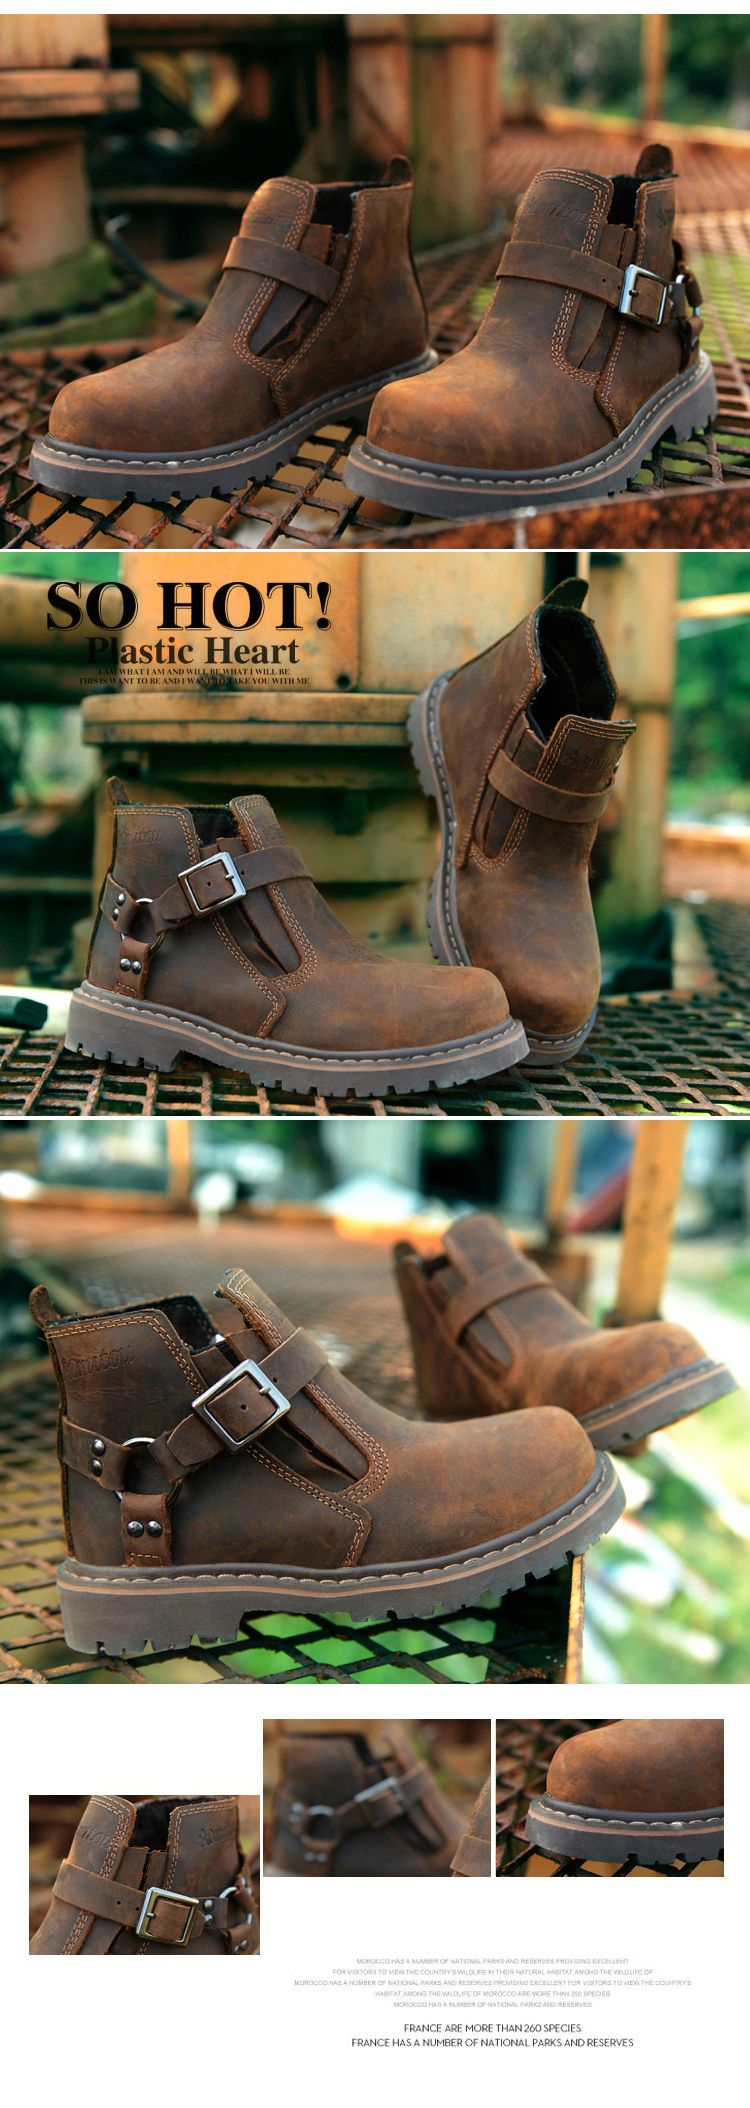 fall new england lun mading soled boots lesbian boots tooling